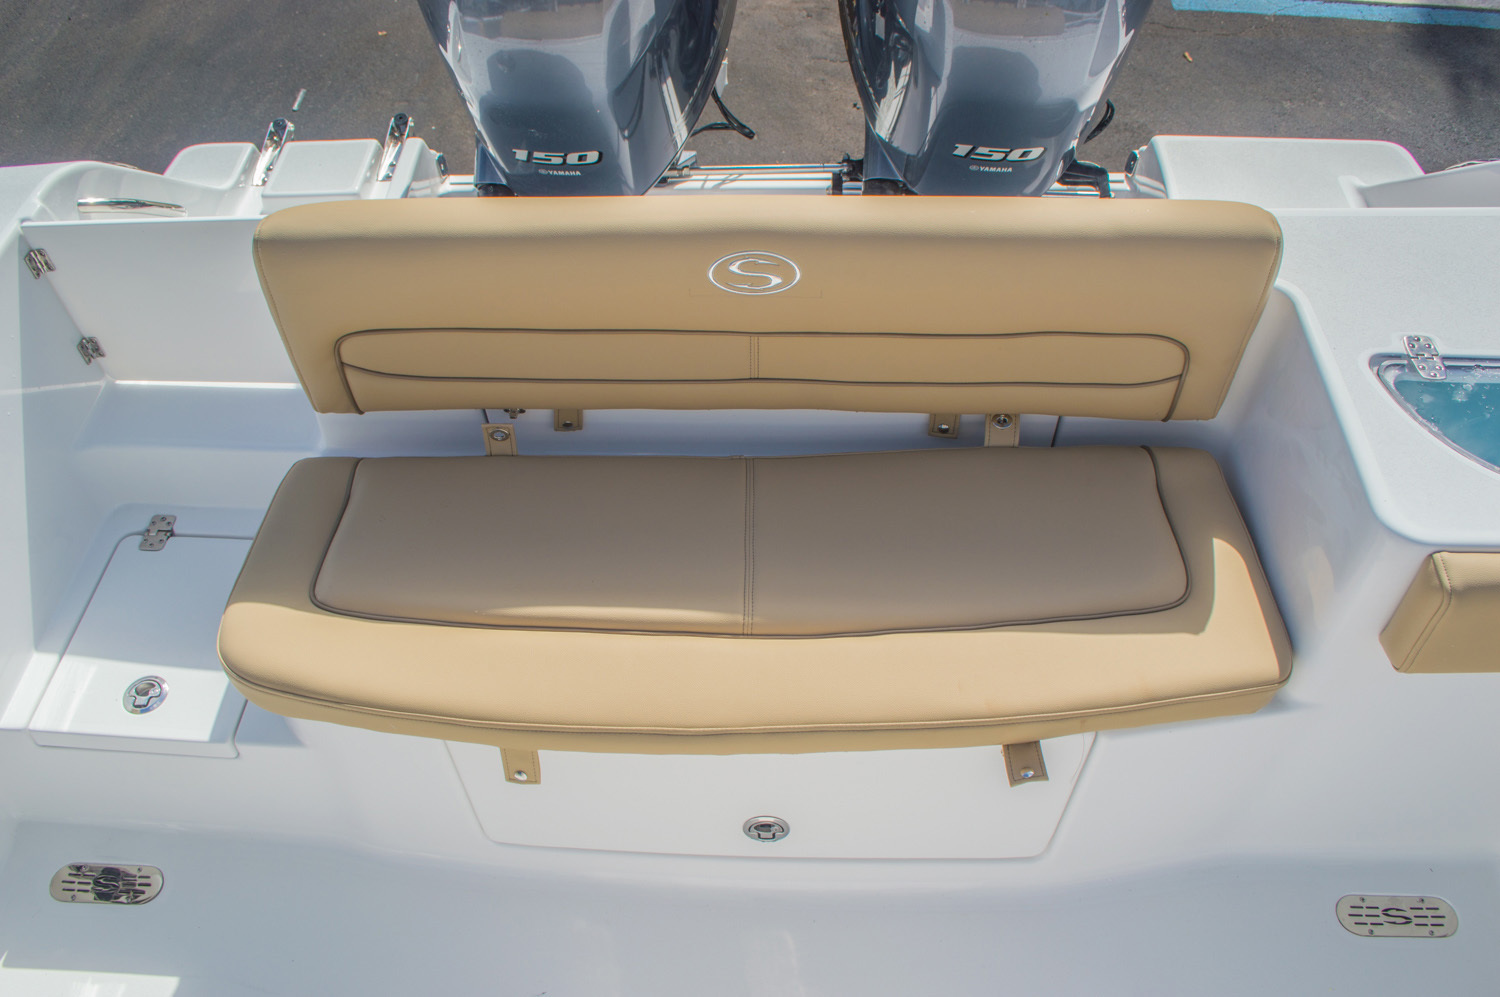 Thumbnail 12 for New 2016 Sportsman Heritage 251 Center Console boat for sale in Miami, FL